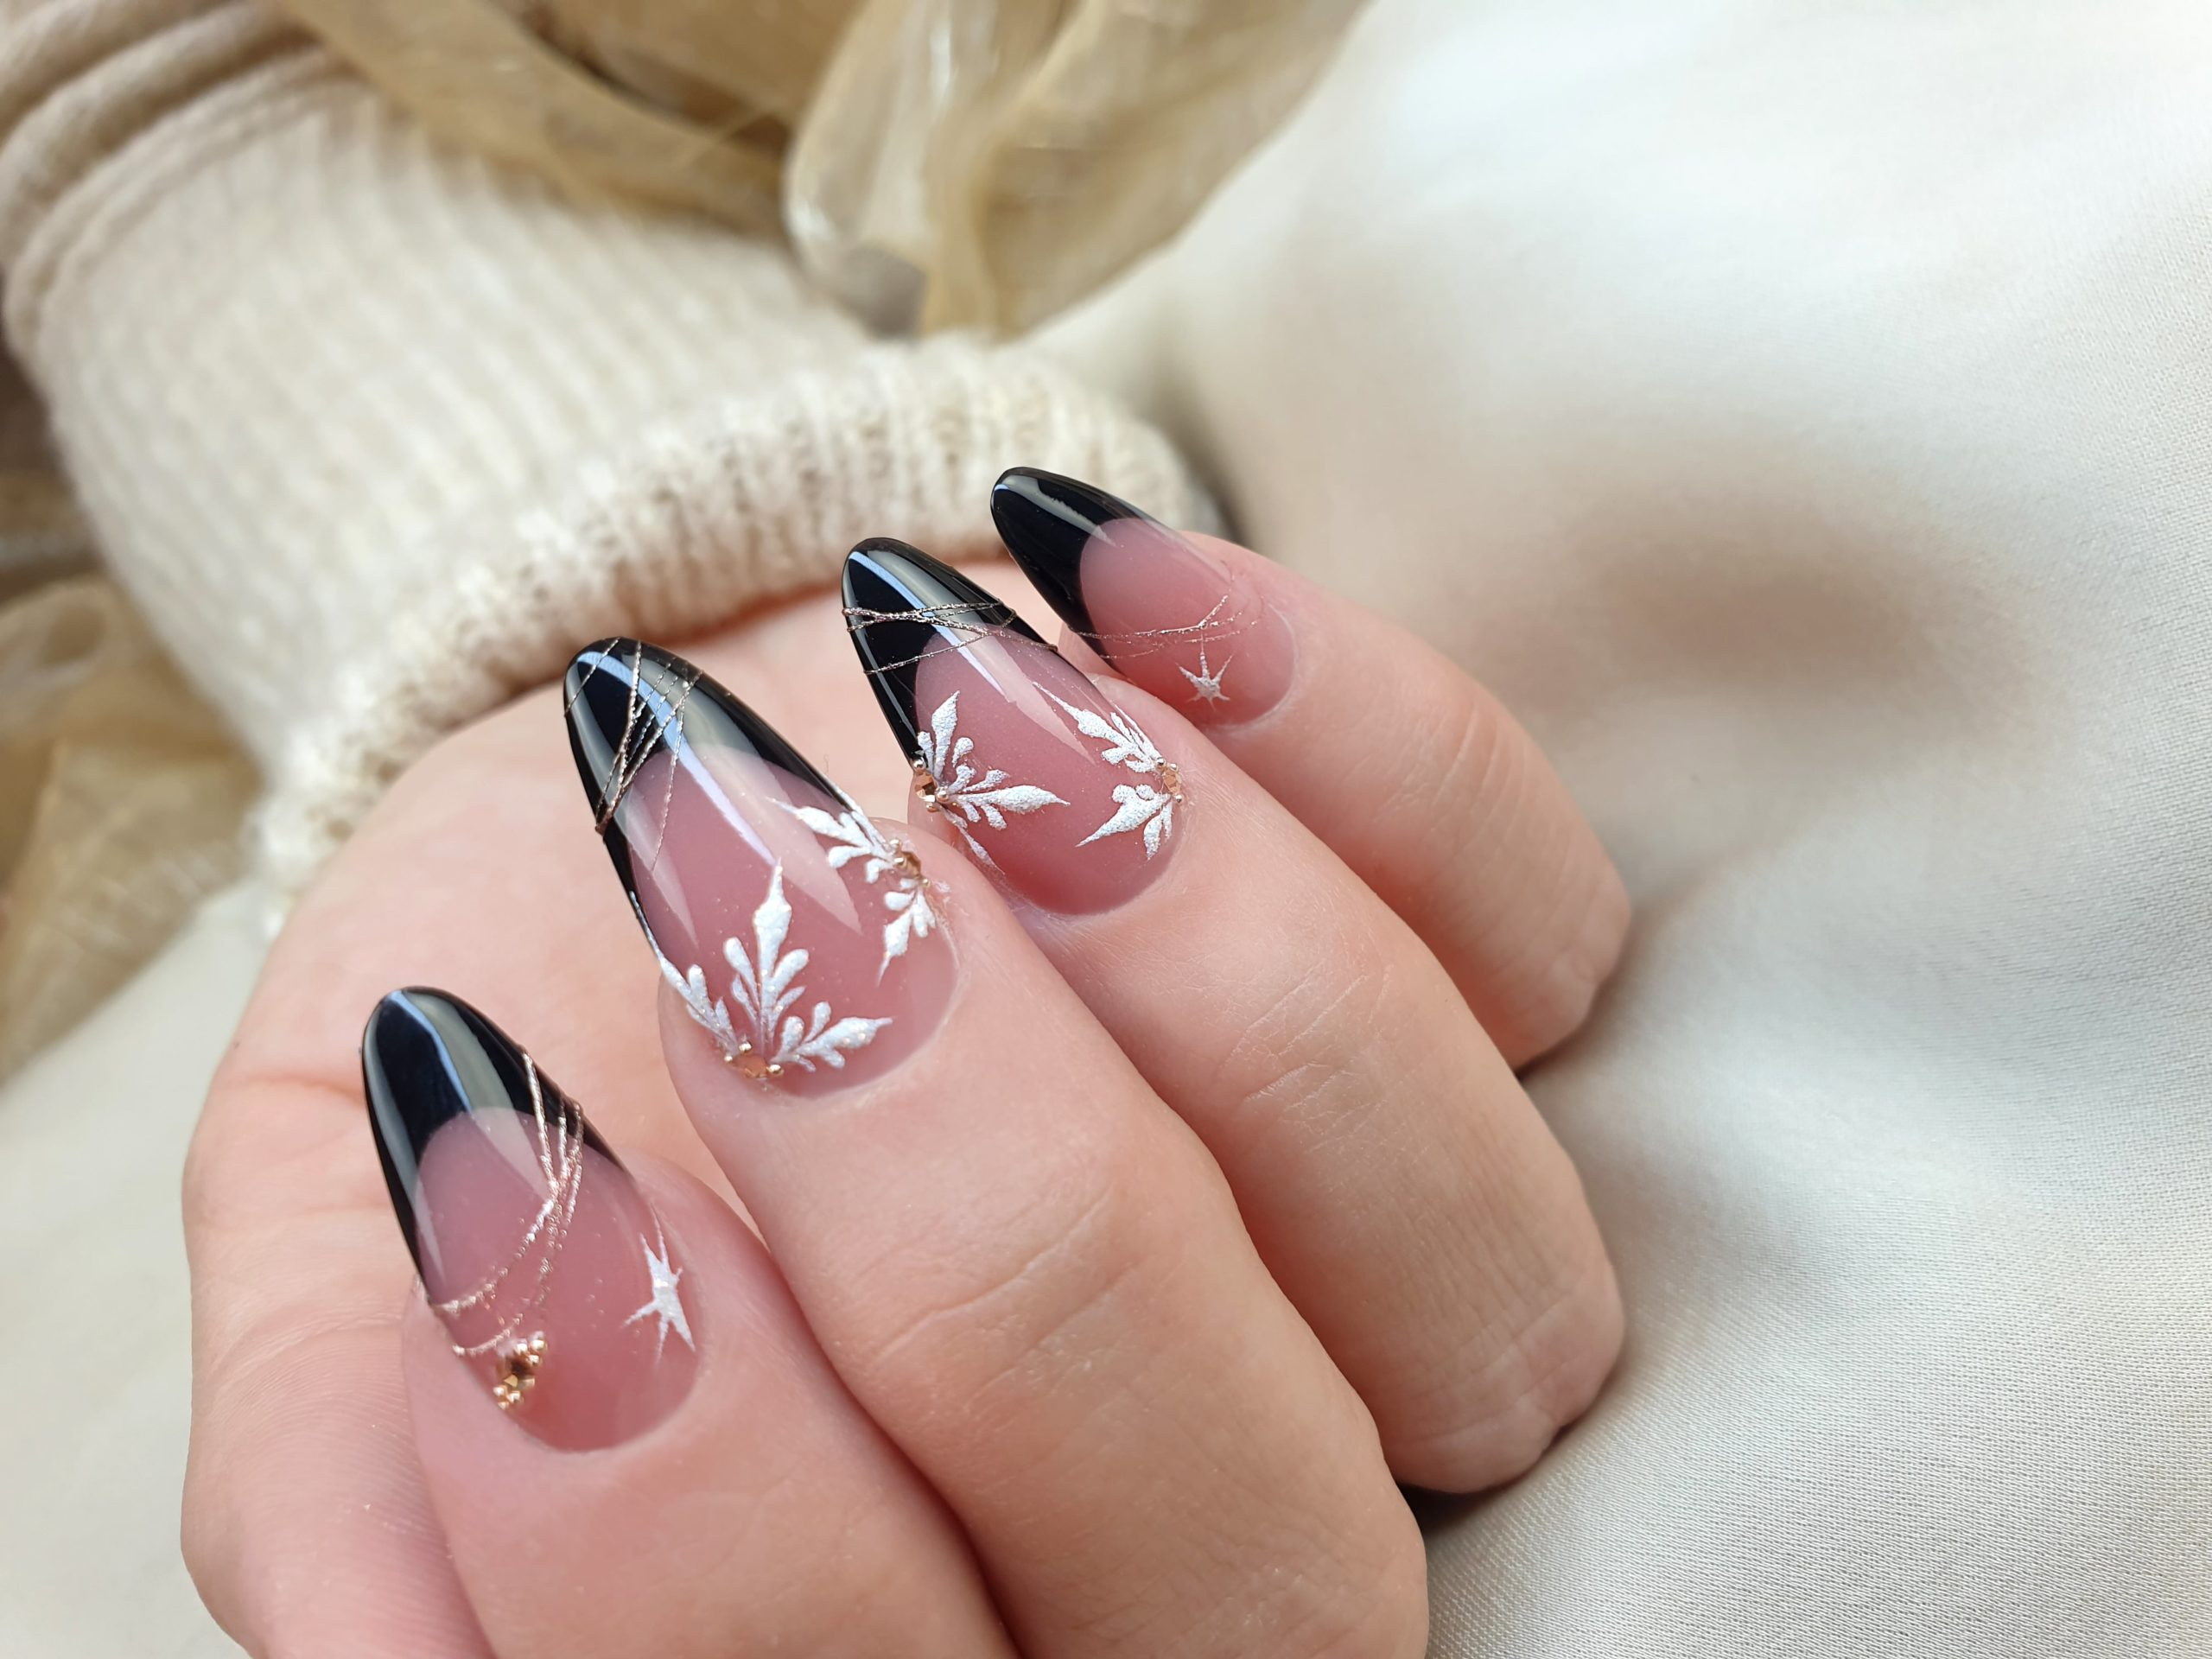 BLACK FRENCH ALMOND CON COVER BUILDER GEL